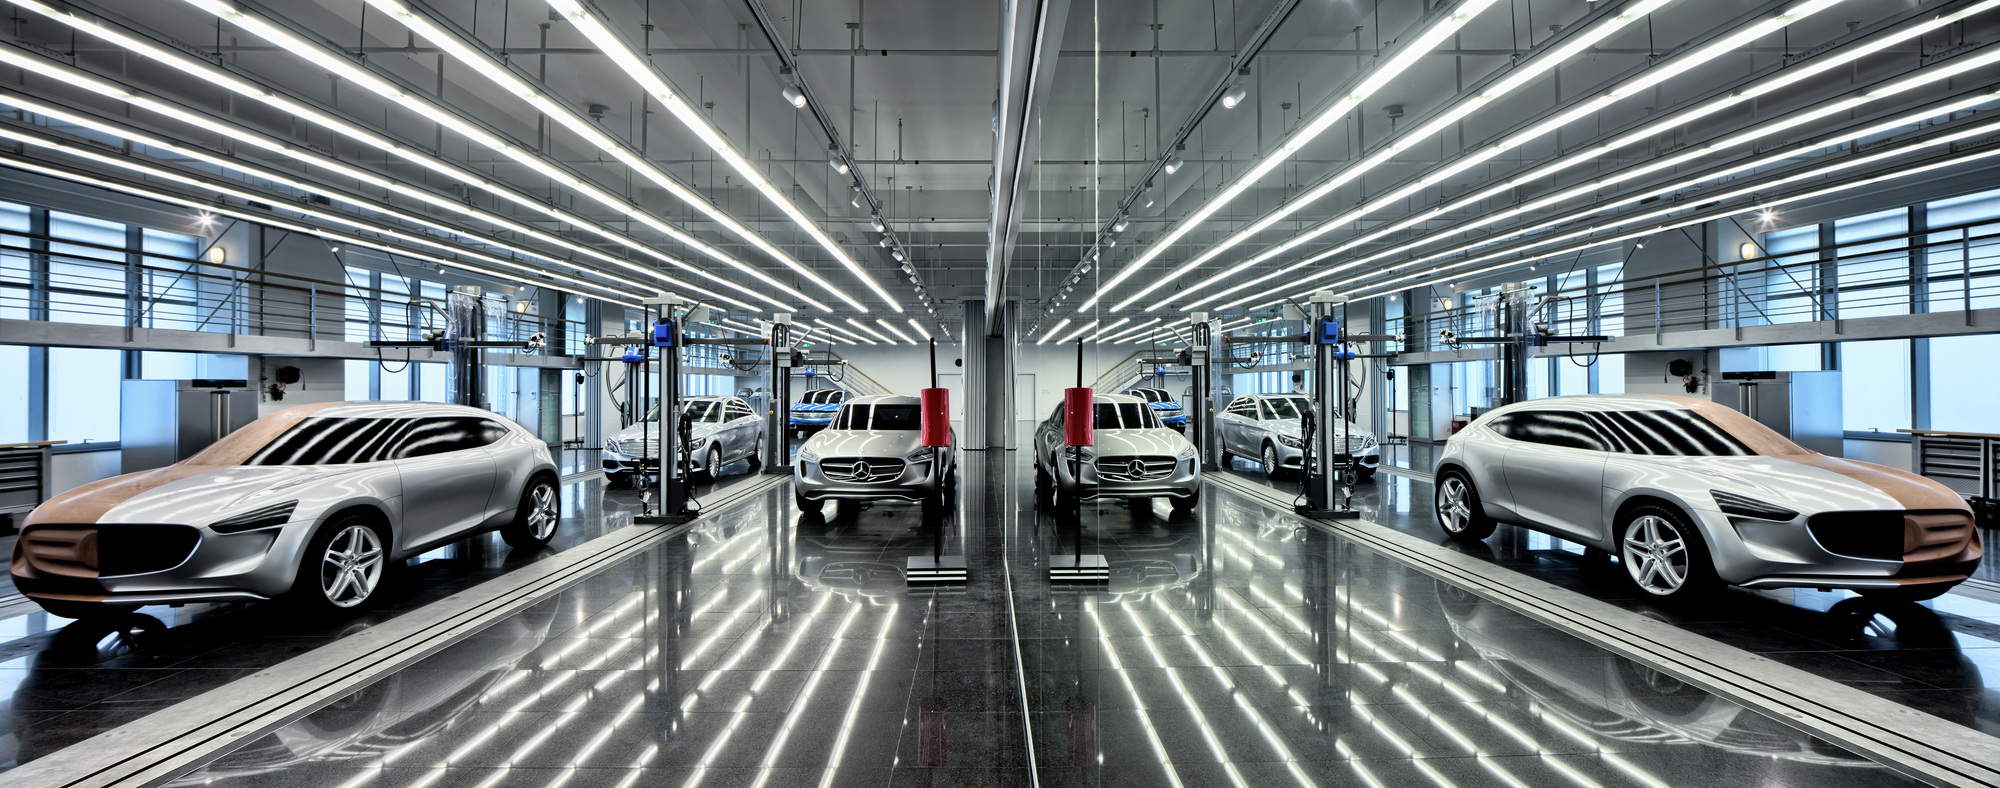 Mercedes-Benz Advanced Design Center of China / anySCALE ...